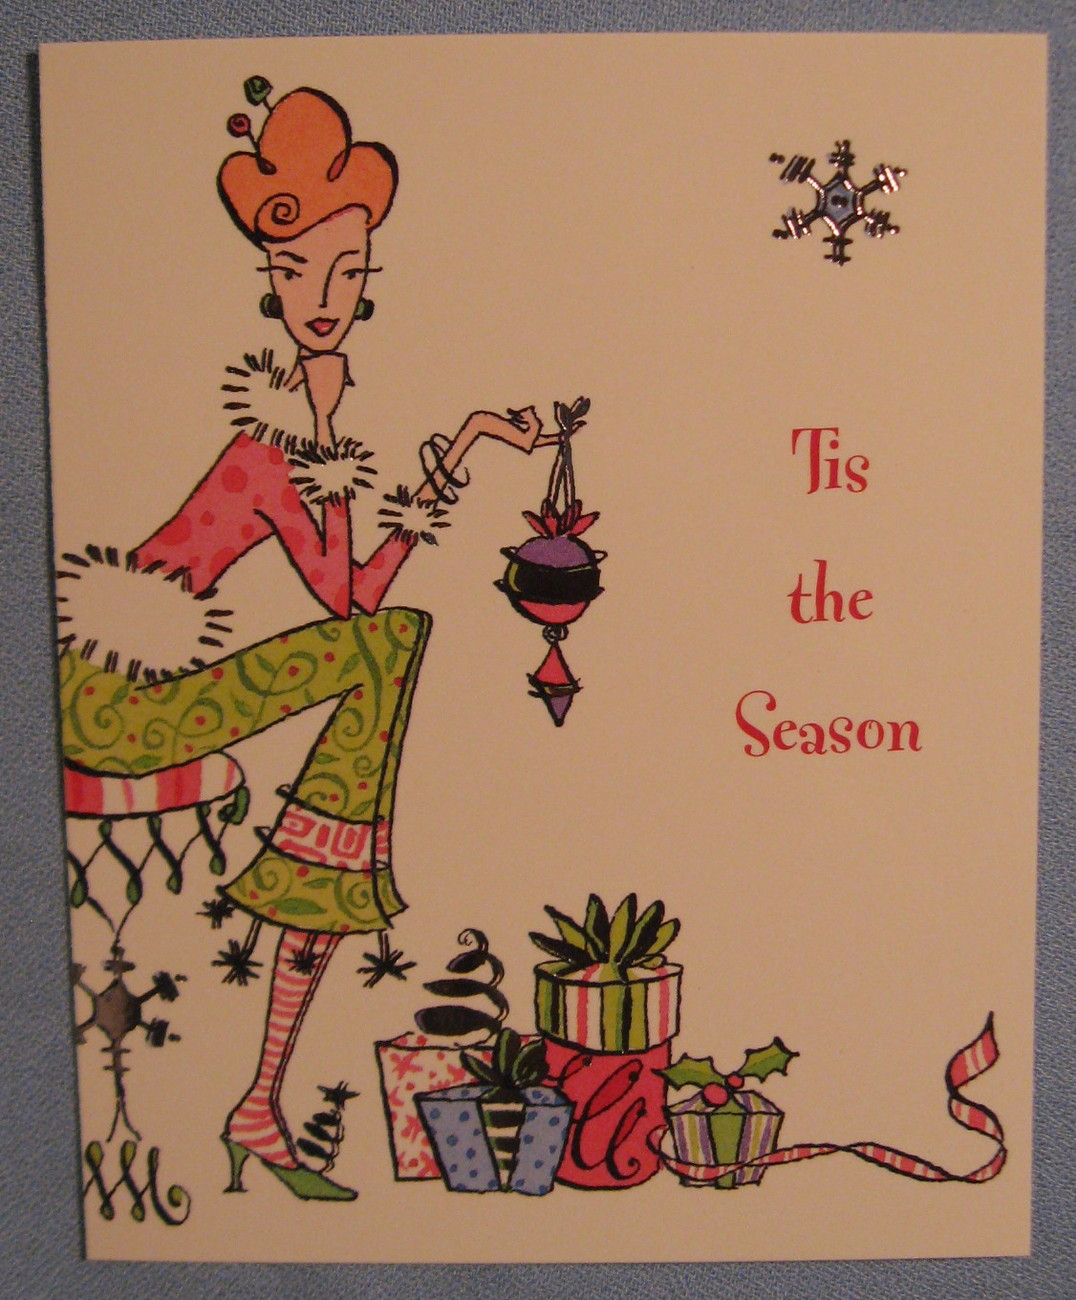 Marcel_schurman_christmas_season_card_1